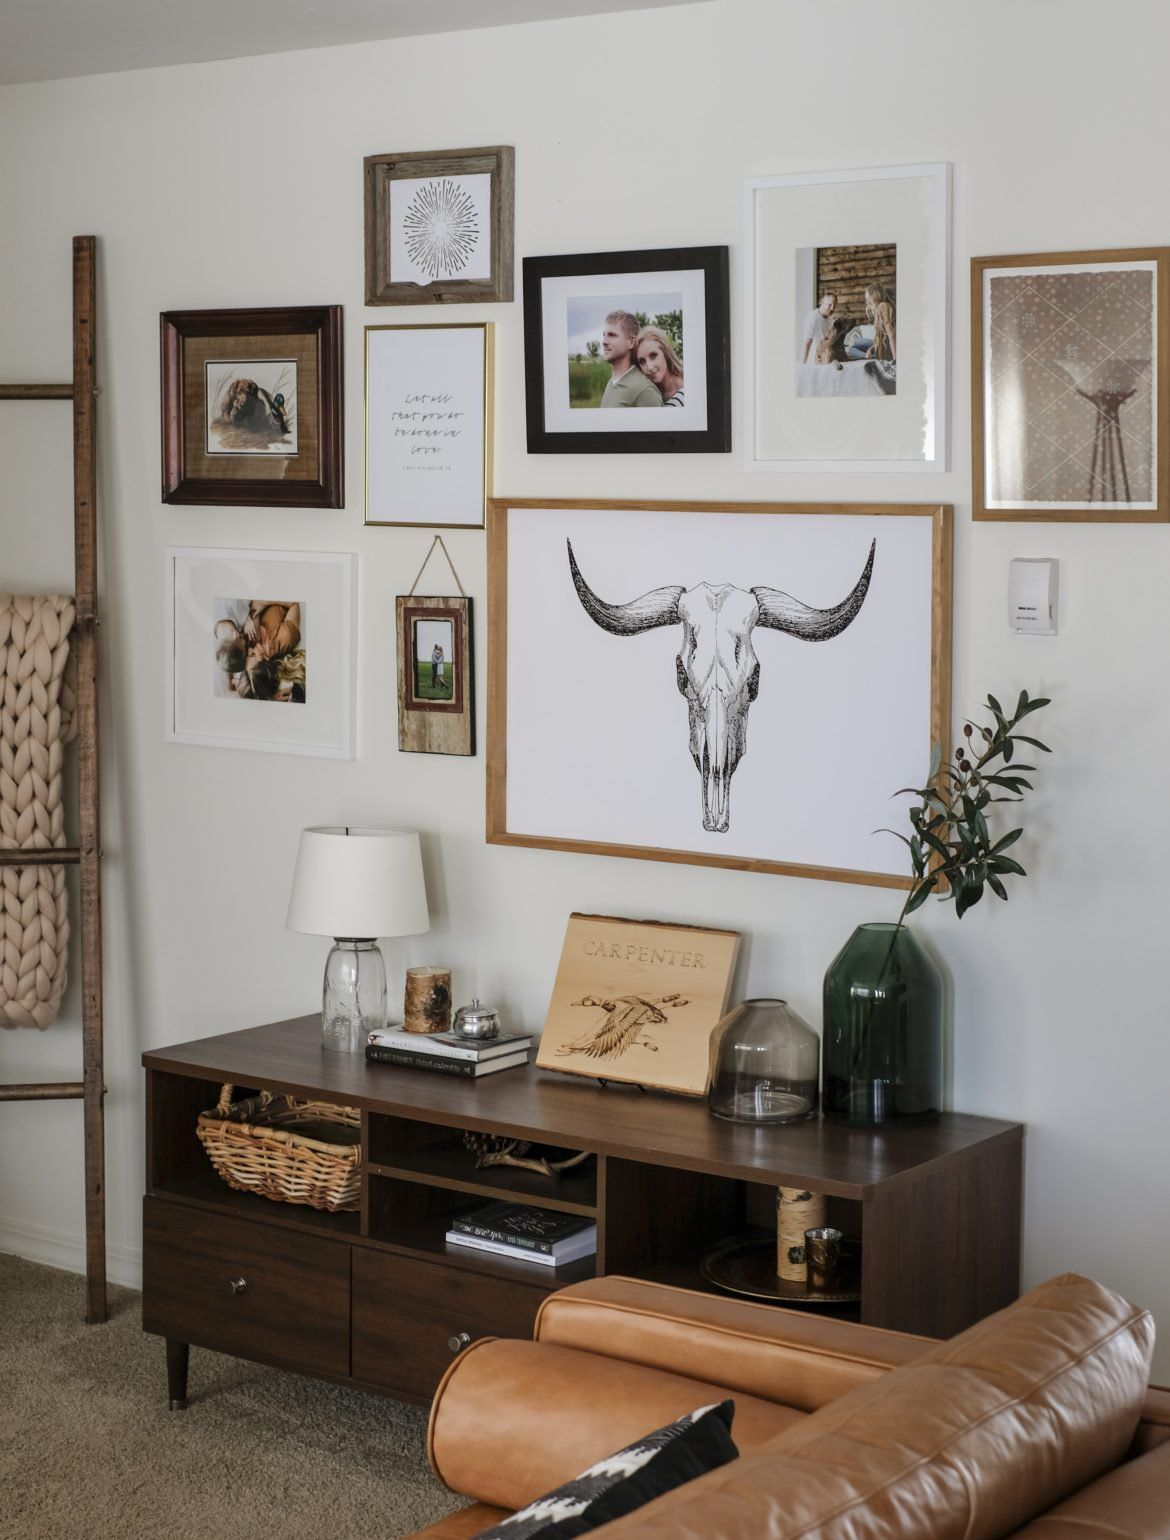 How To Layout A Gallery Wall + Free Printables | Joyfully Growing Blog